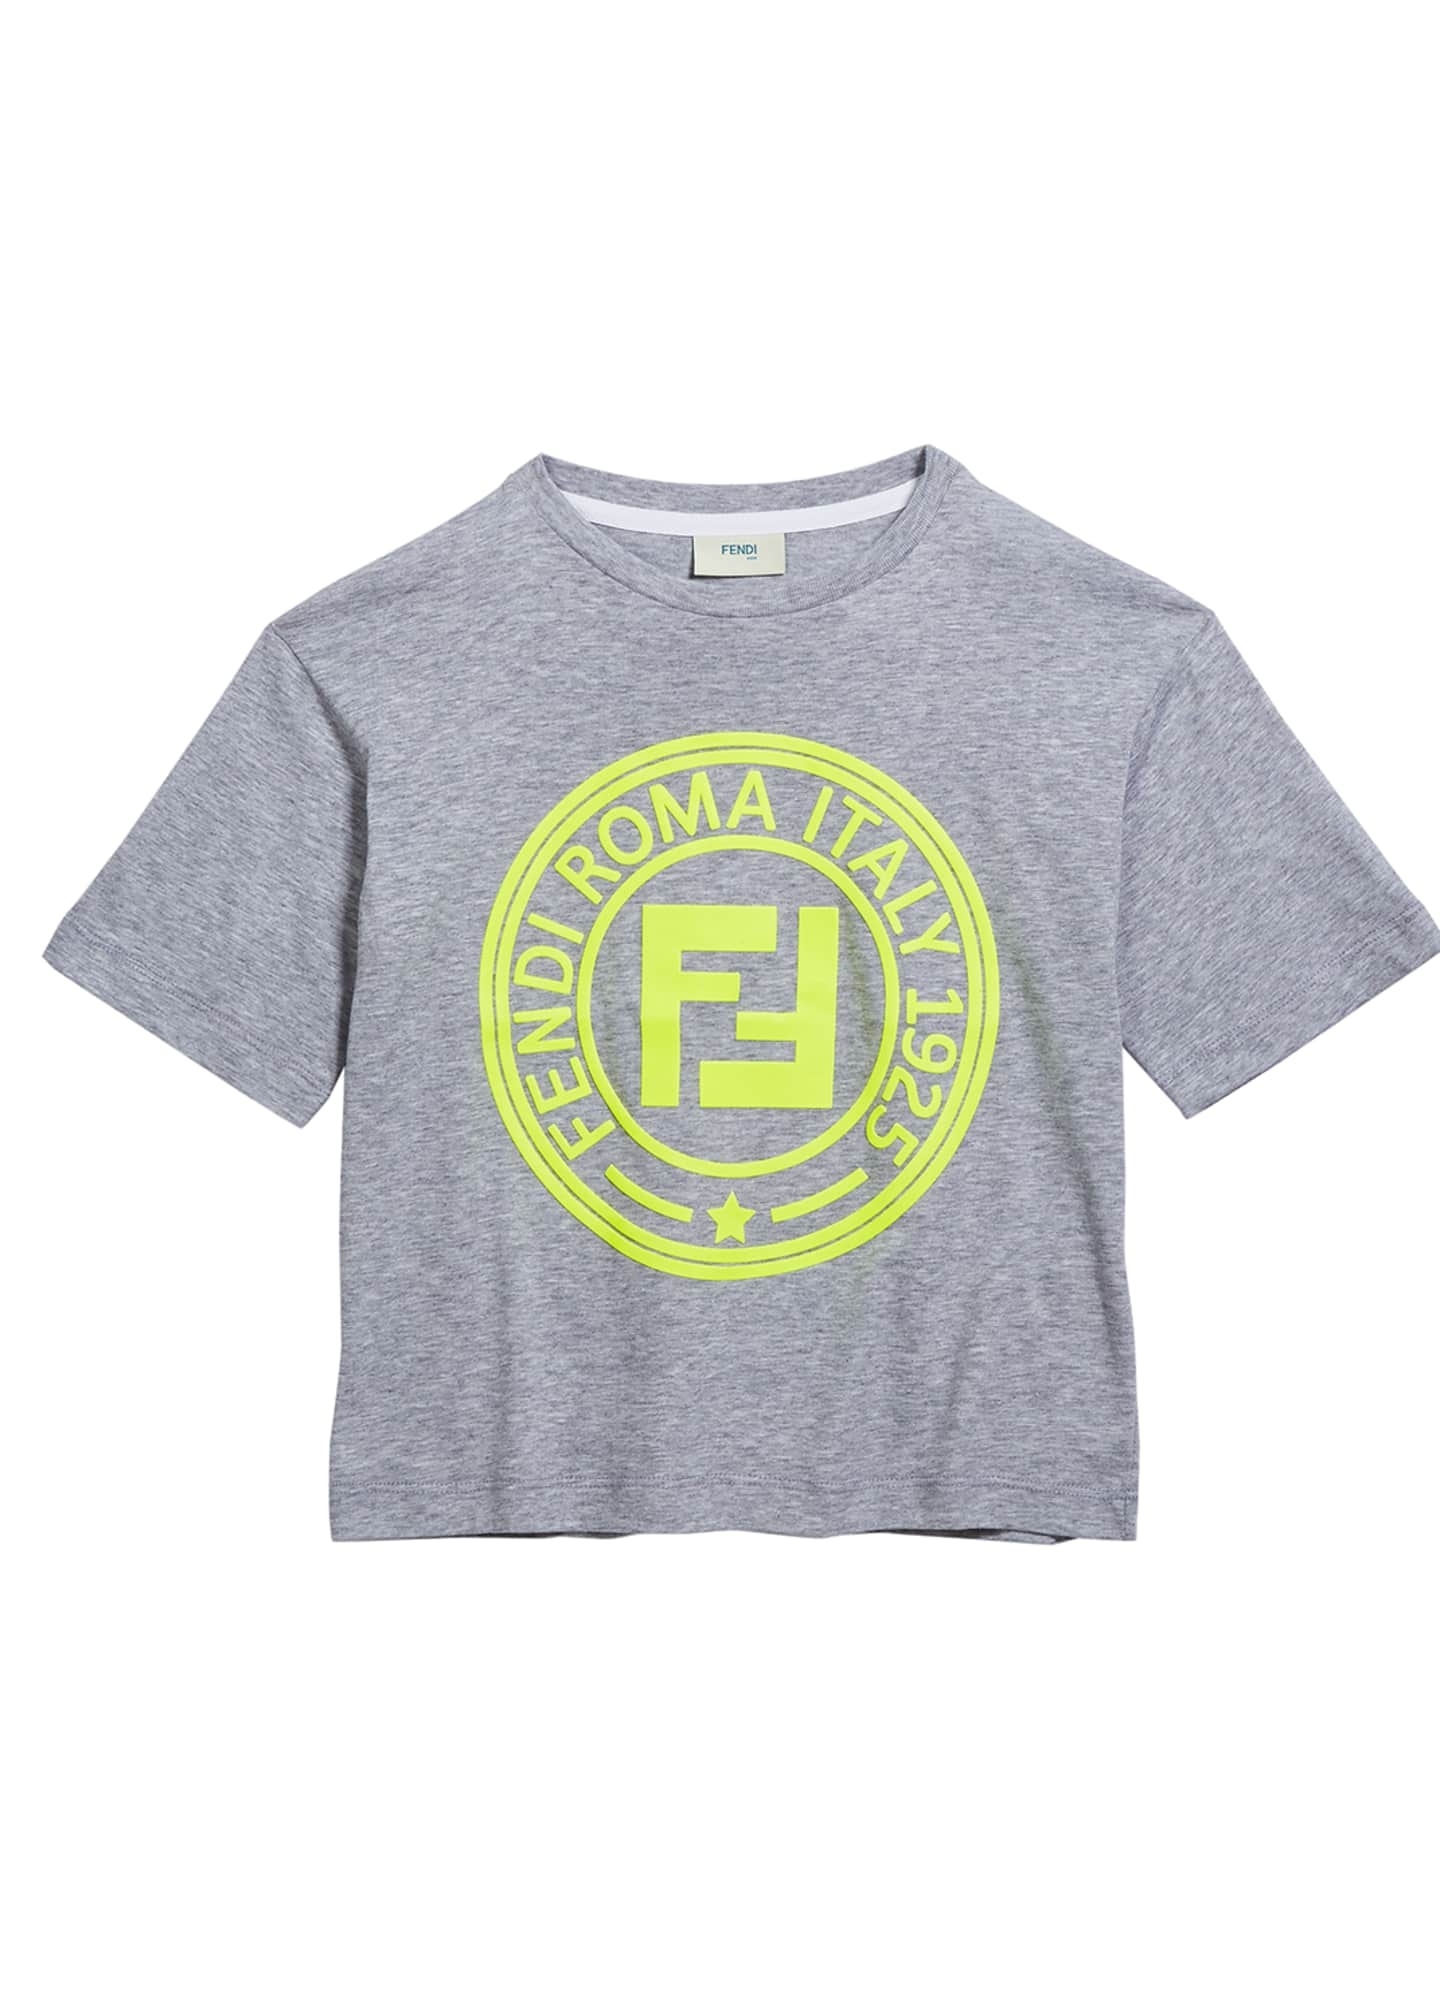 Fendi Boy's Logo T-Shirt, Size 4-8